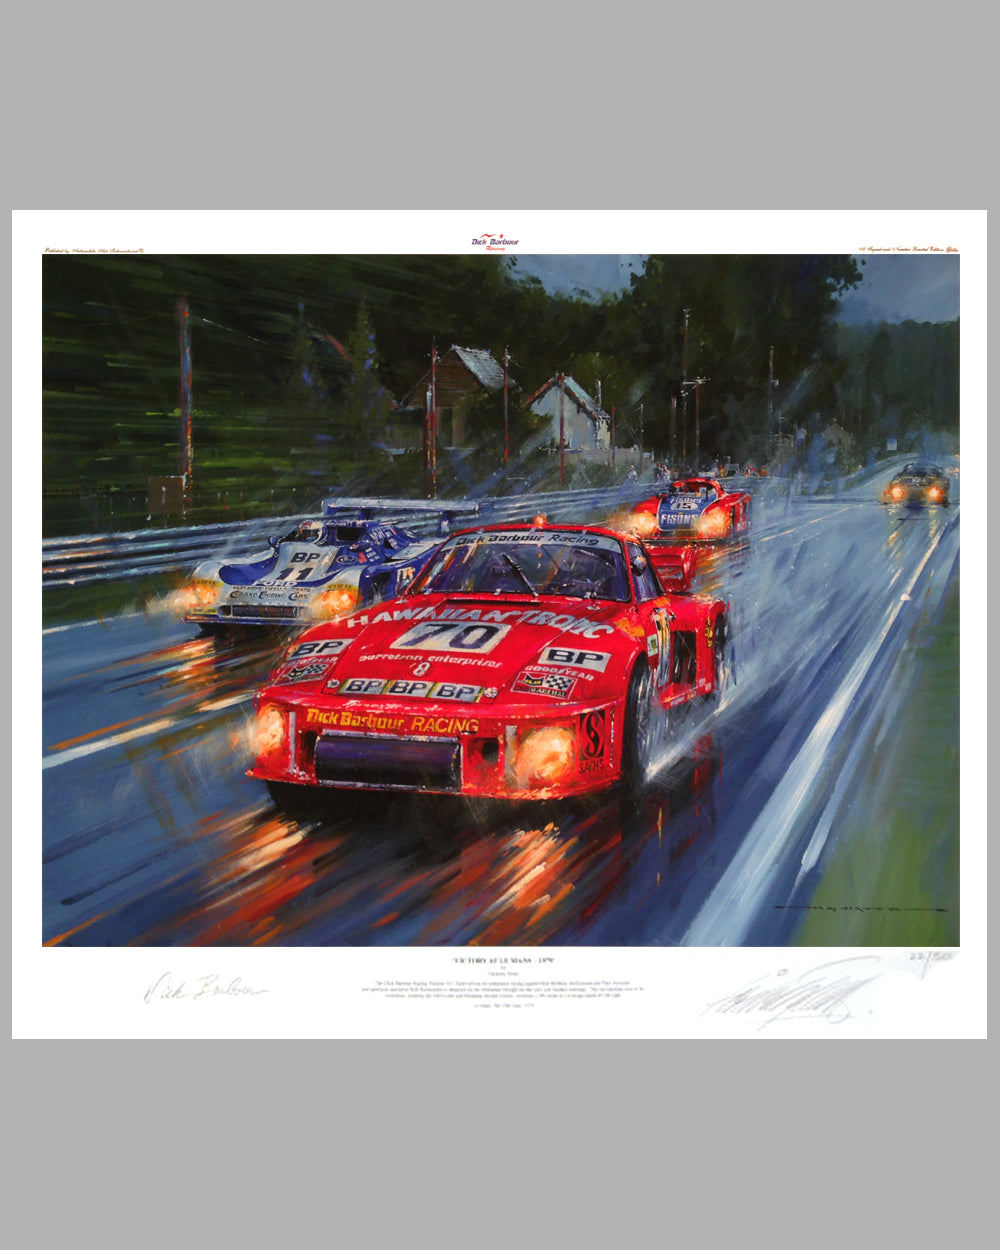 Victory at Le Mans 1979 giclee on paper by Nicholas Watts, autographed by Dick Barbour